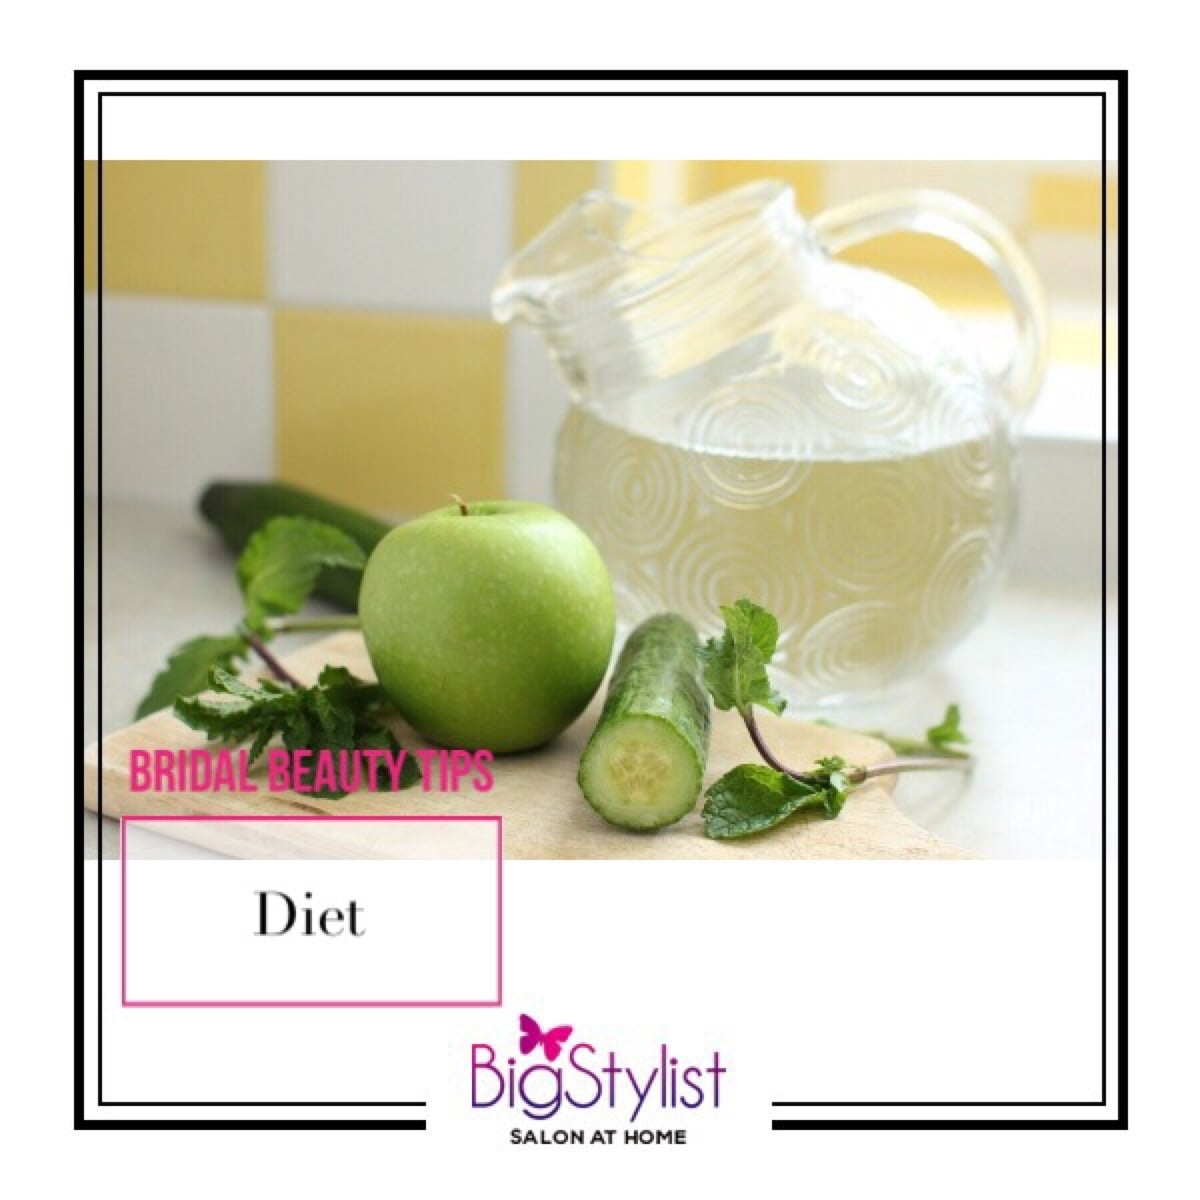 Drink enough water to keep your body toxin-free. Aim for at least 8-10 glasses of water. Opt for coconut water or lime water to shed the bloat. Eat a balanced diet consisting of fruits, green vegetables, and protein. #bridalbeautytips #beautytips #bridestobe #bride #skincare #diet #healthy #cleaneating #beauty #stayhomebeautiful #BigStylist